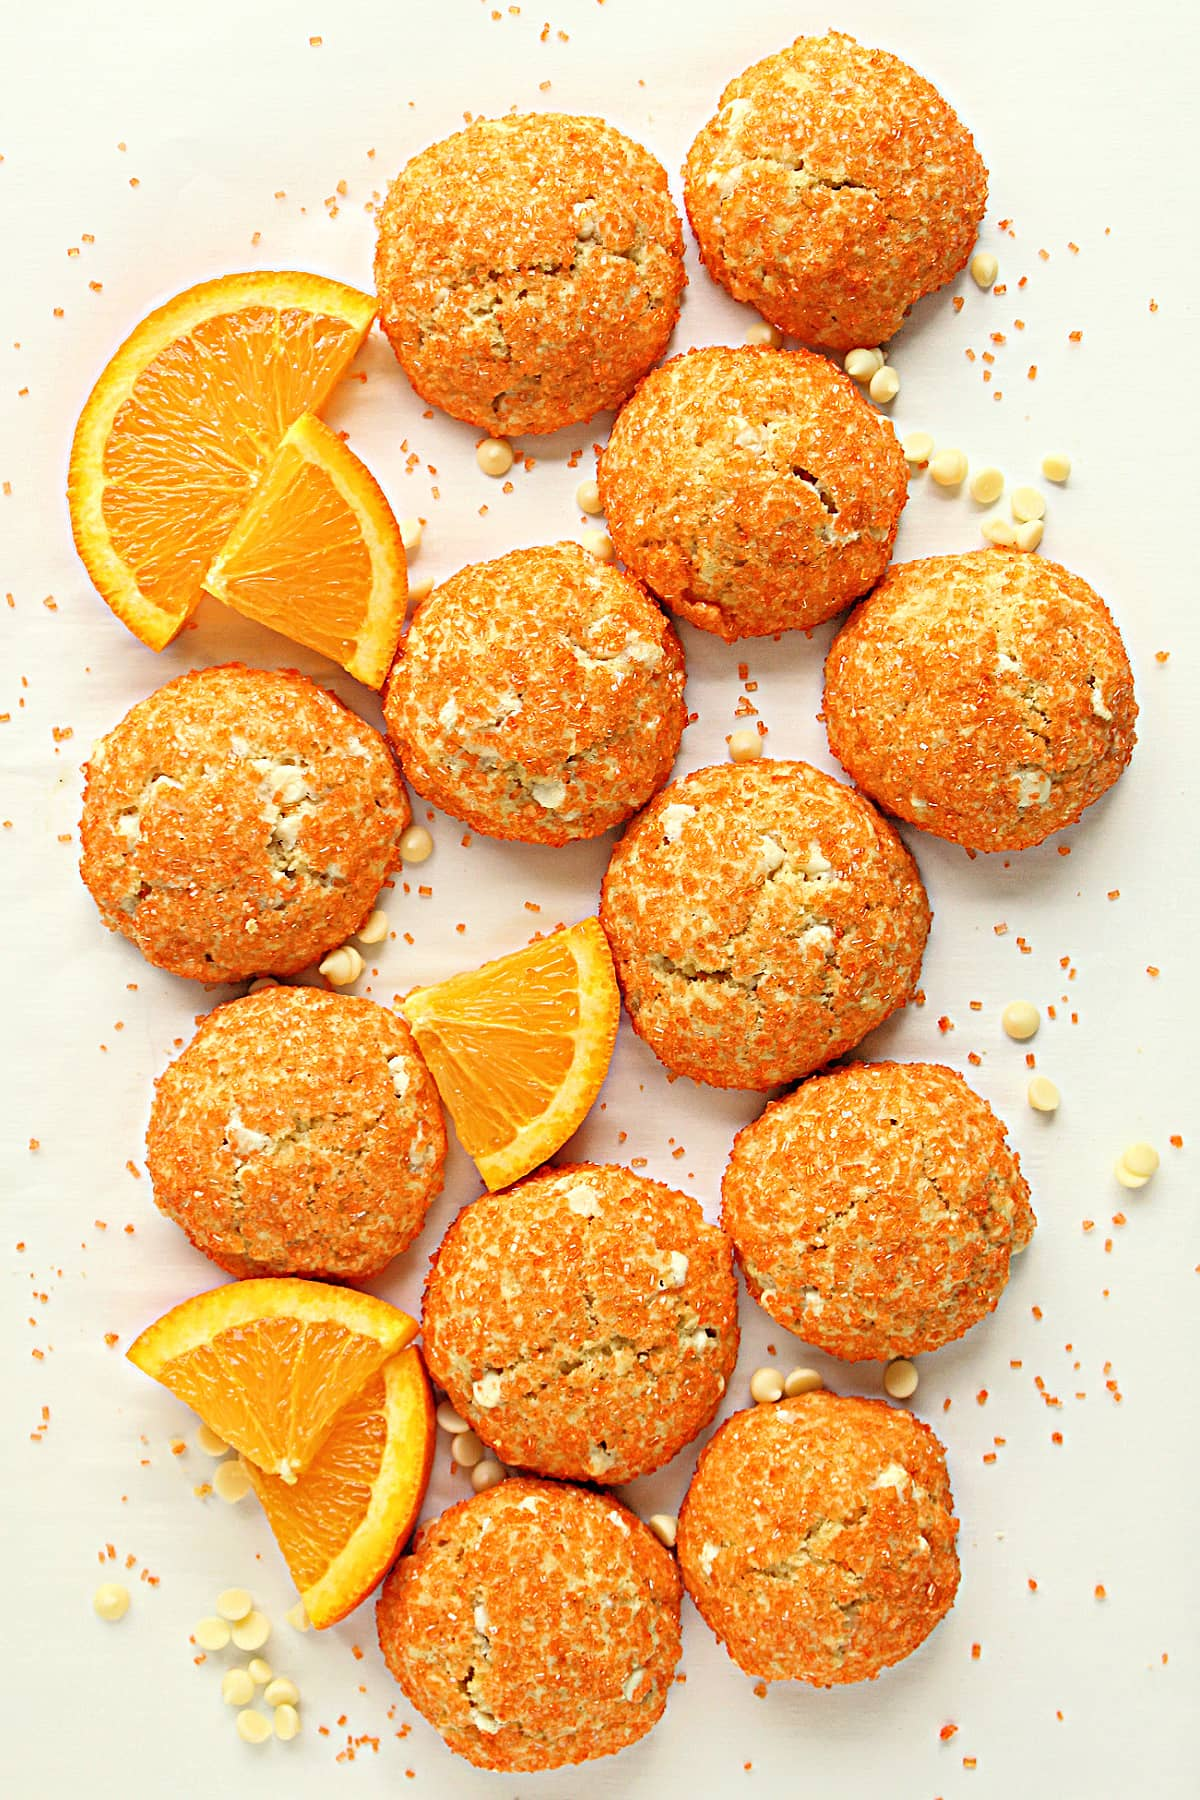 Cookies covered in orange sugar on a white background with orange slices, sugar, and white  chips.